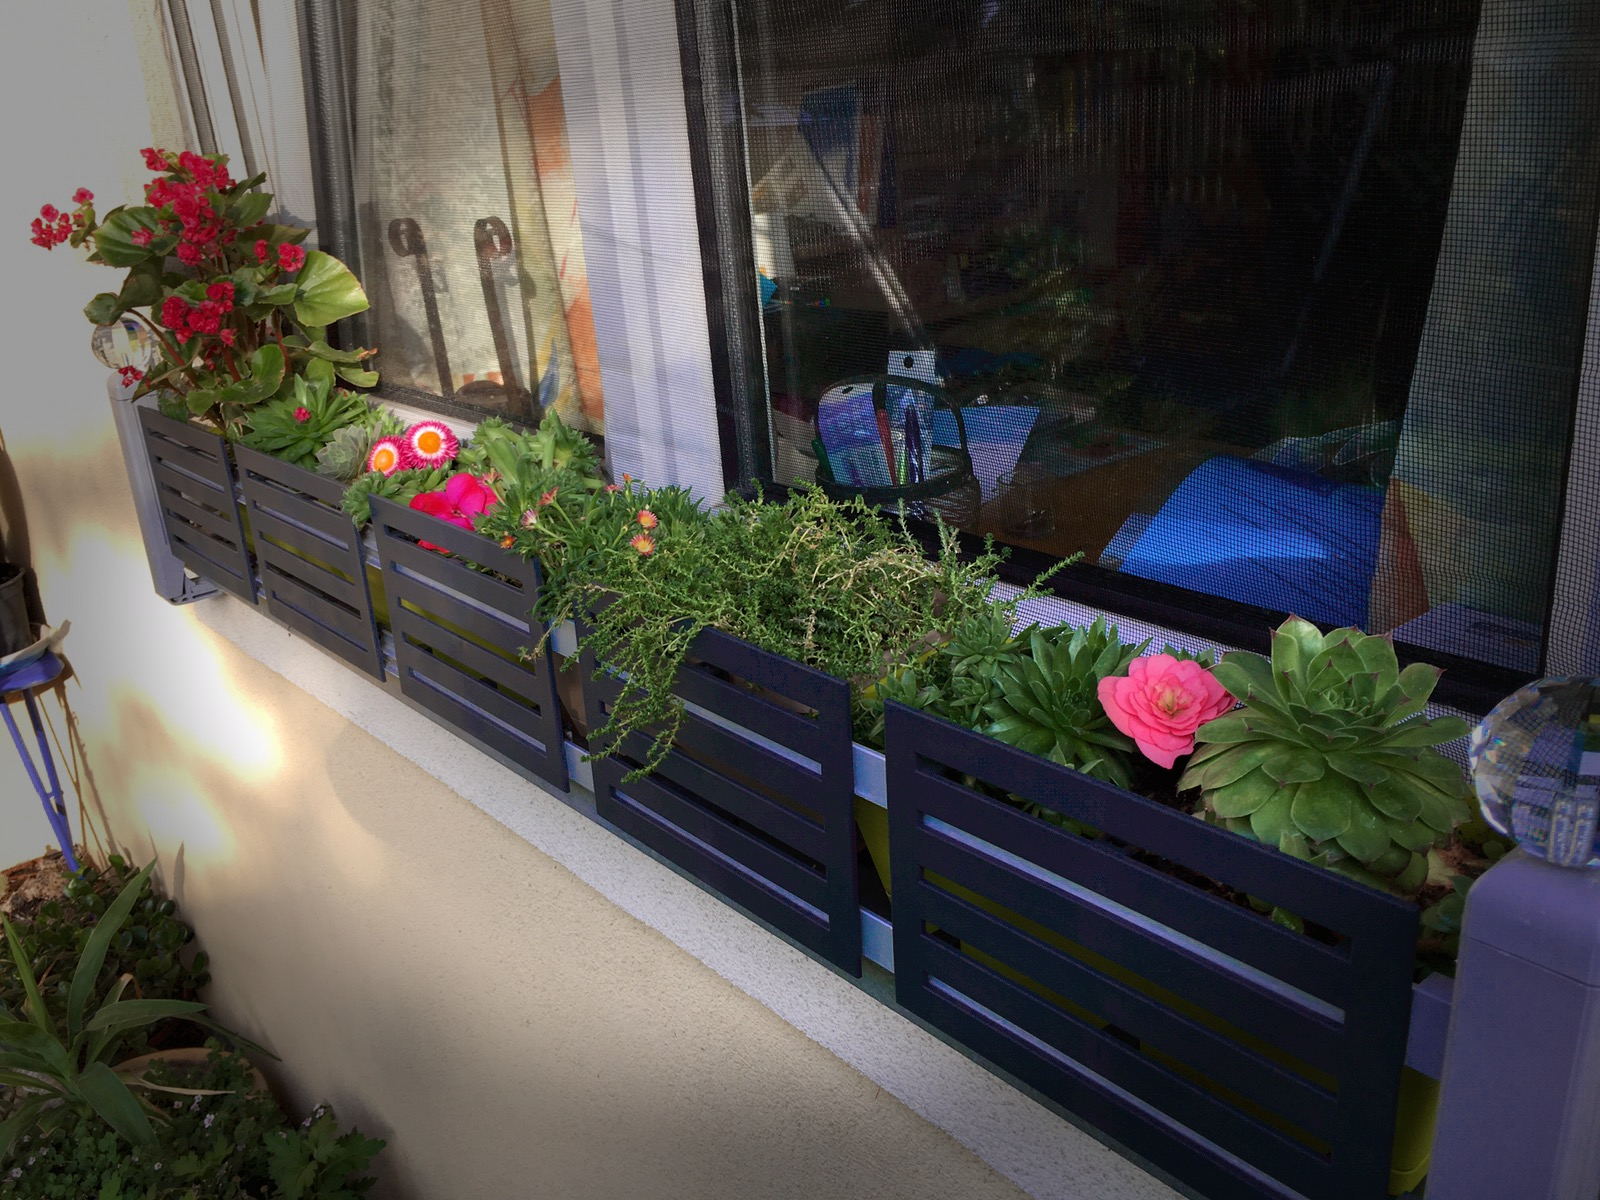 Masu planter holder for all window sills without drilling or sawing